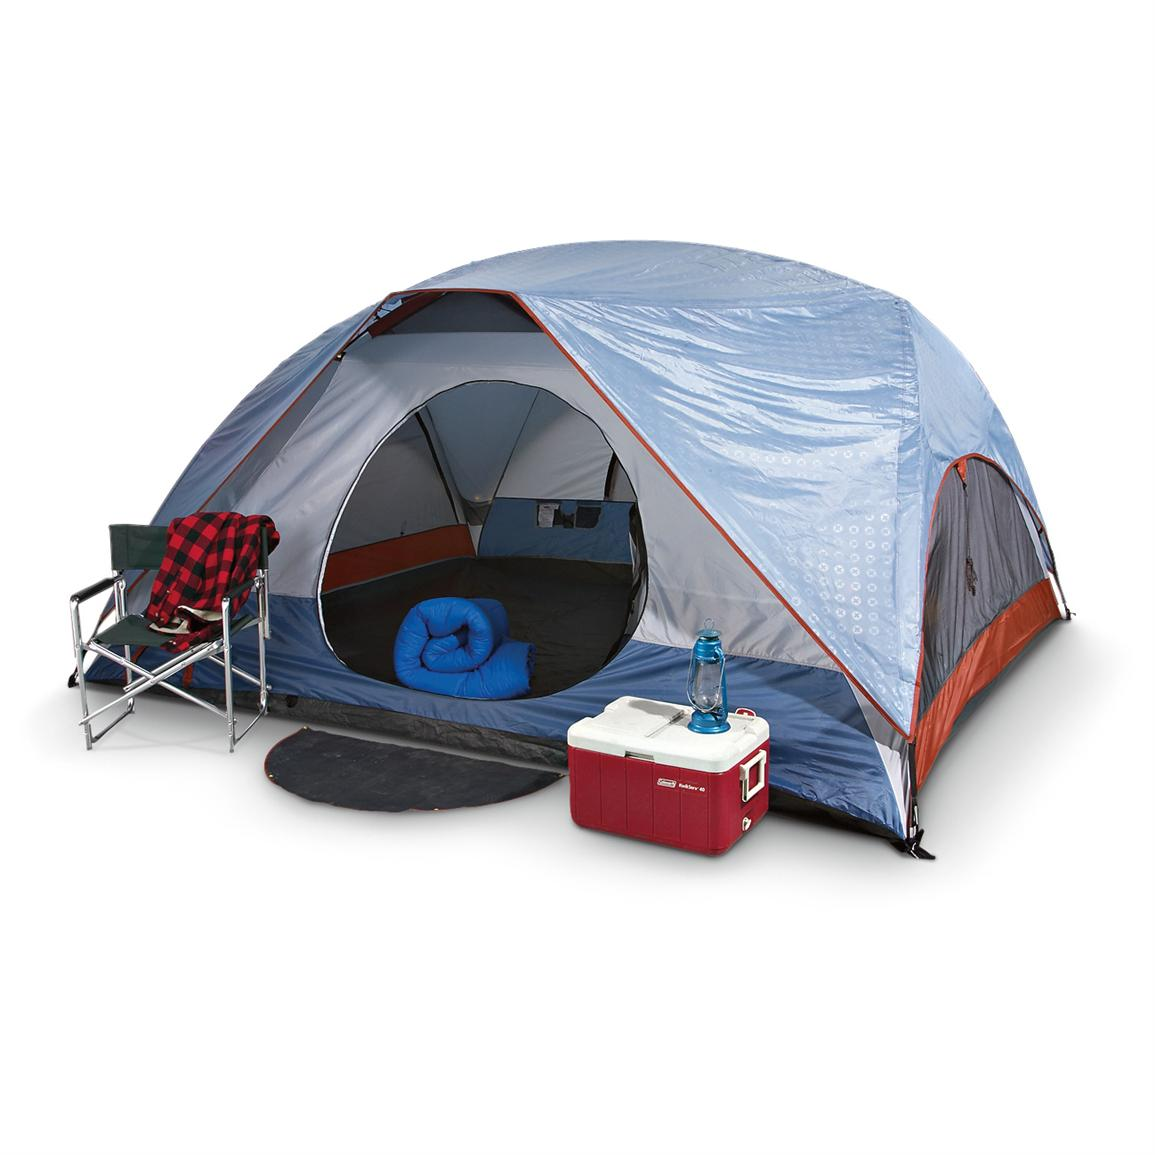 Swiss Gear® Grimsel Pass 6-person Family Dome Tent  sc 1 st  Sportsmanu0027s Guide & Swiss Gear® Grimsel Pass 6 - person Family Dome Tent - 156613 ...